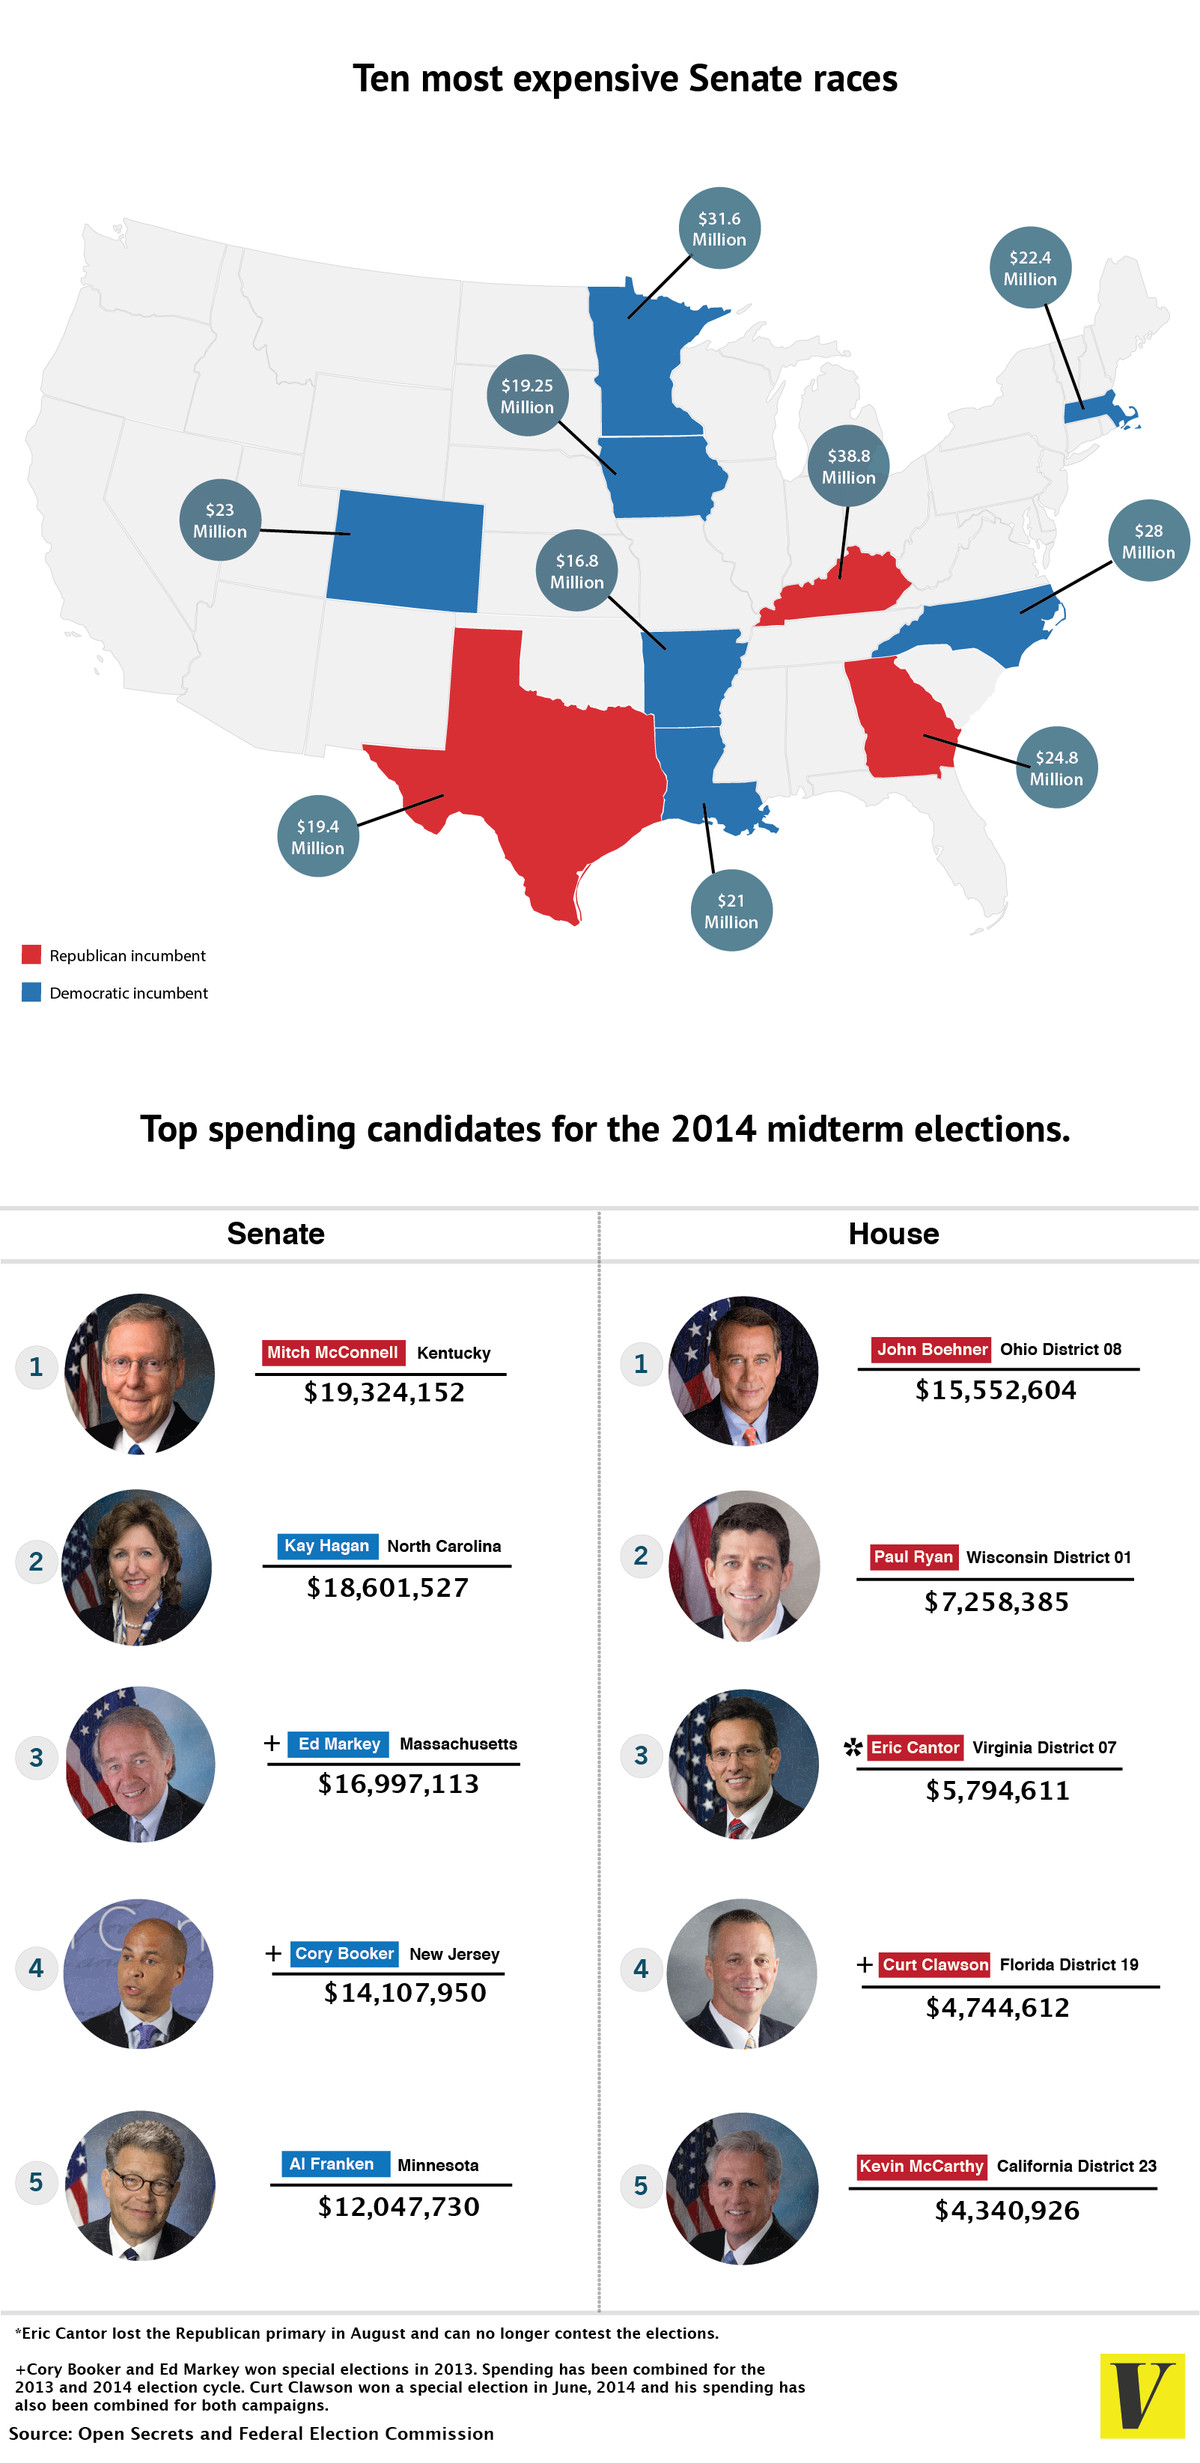 This Graphic Based On Data From Open Secrets Highlights Some Of The Costliest Individual Senate And House Races